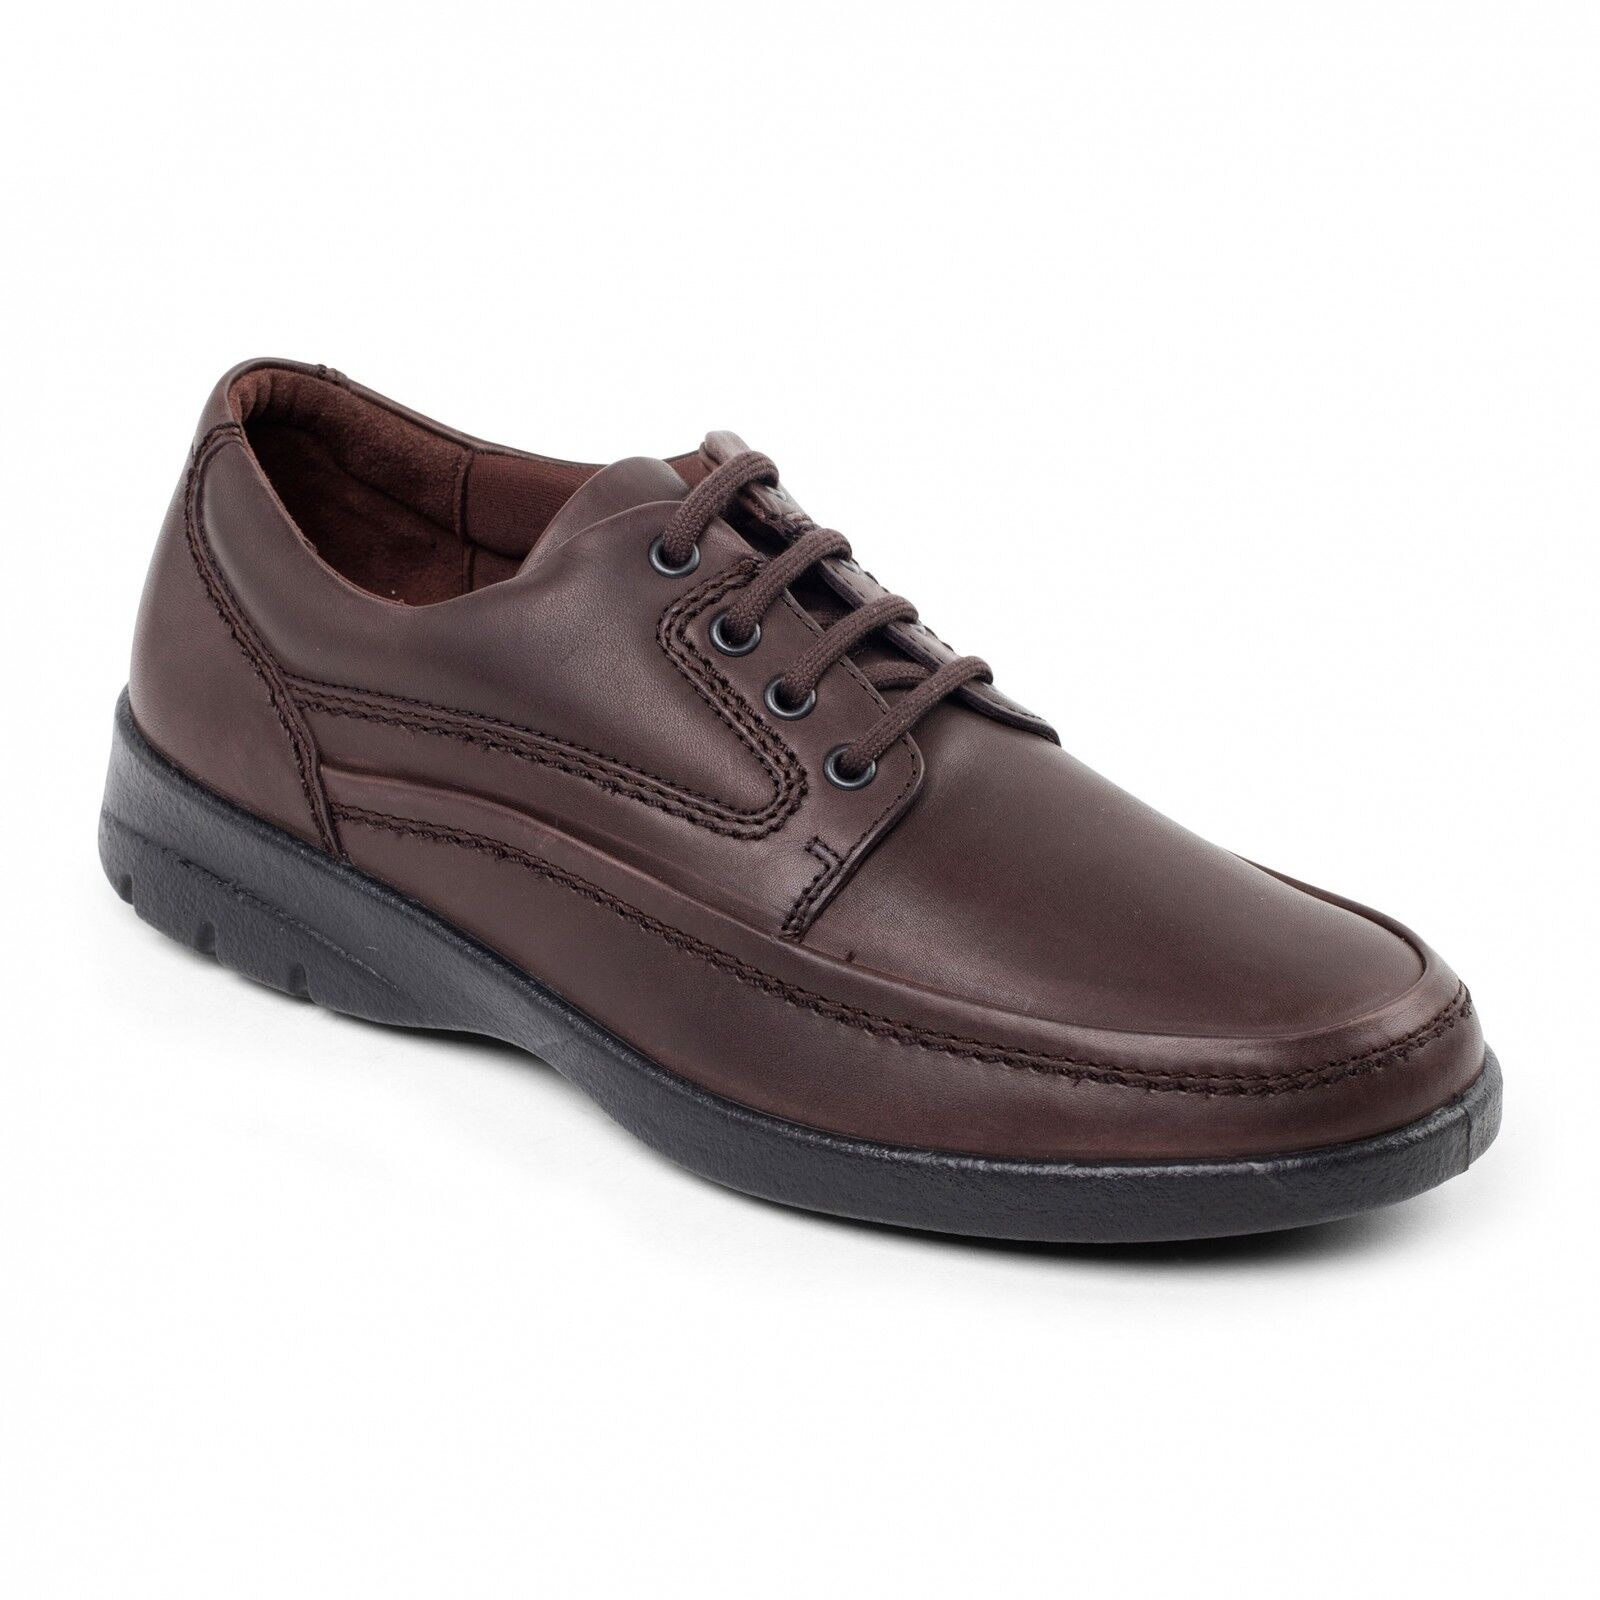 Padders up Da Uomo in Pelle in Pizzo fire up Padders comfort ammortizzata Smart   6813fc